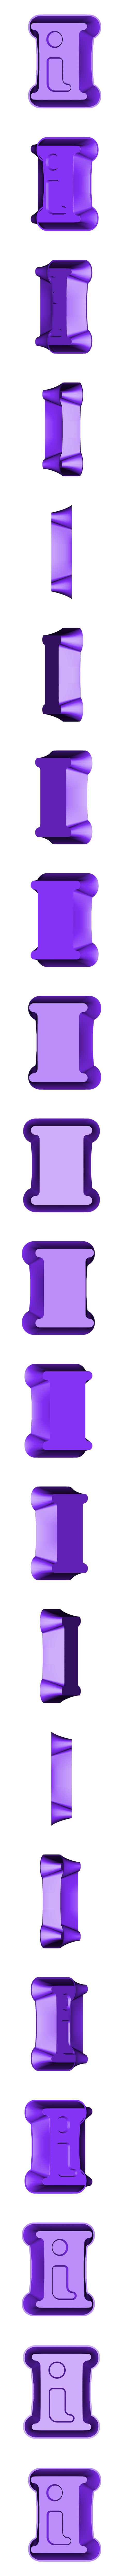 Infix_Regular_bowl.stl Download free STL file Typographic glyphs container collection • 3D printing template, tone001